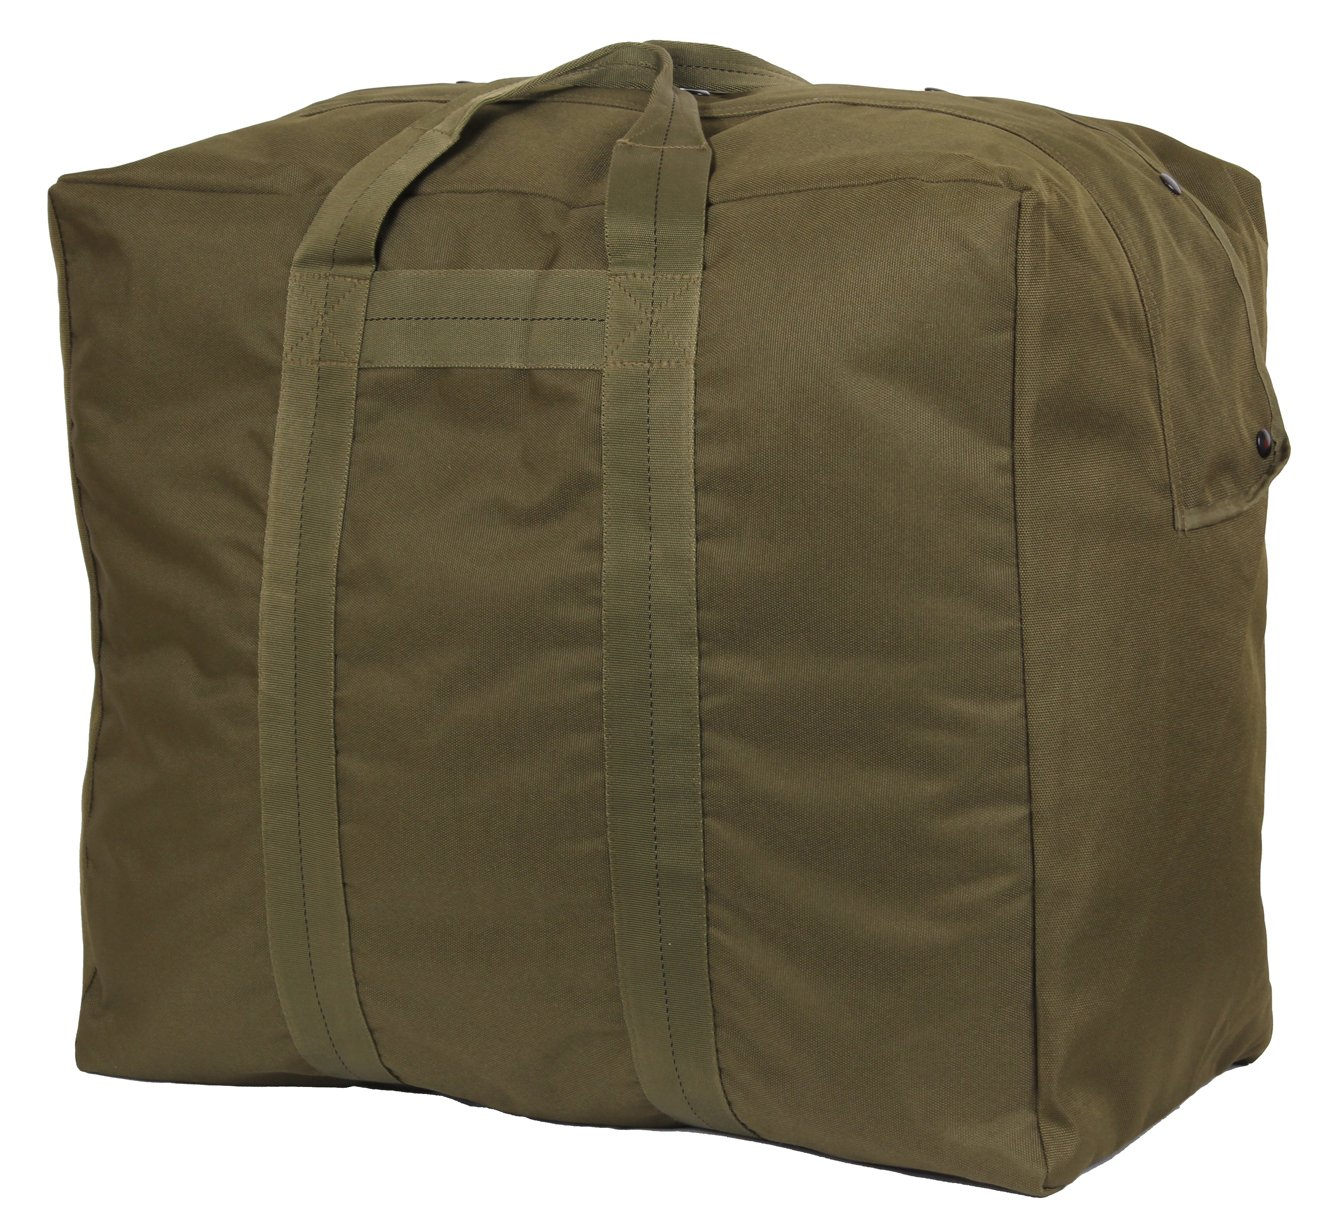 Rothco Enhanced Aviator Kit Bag, Olive Drab